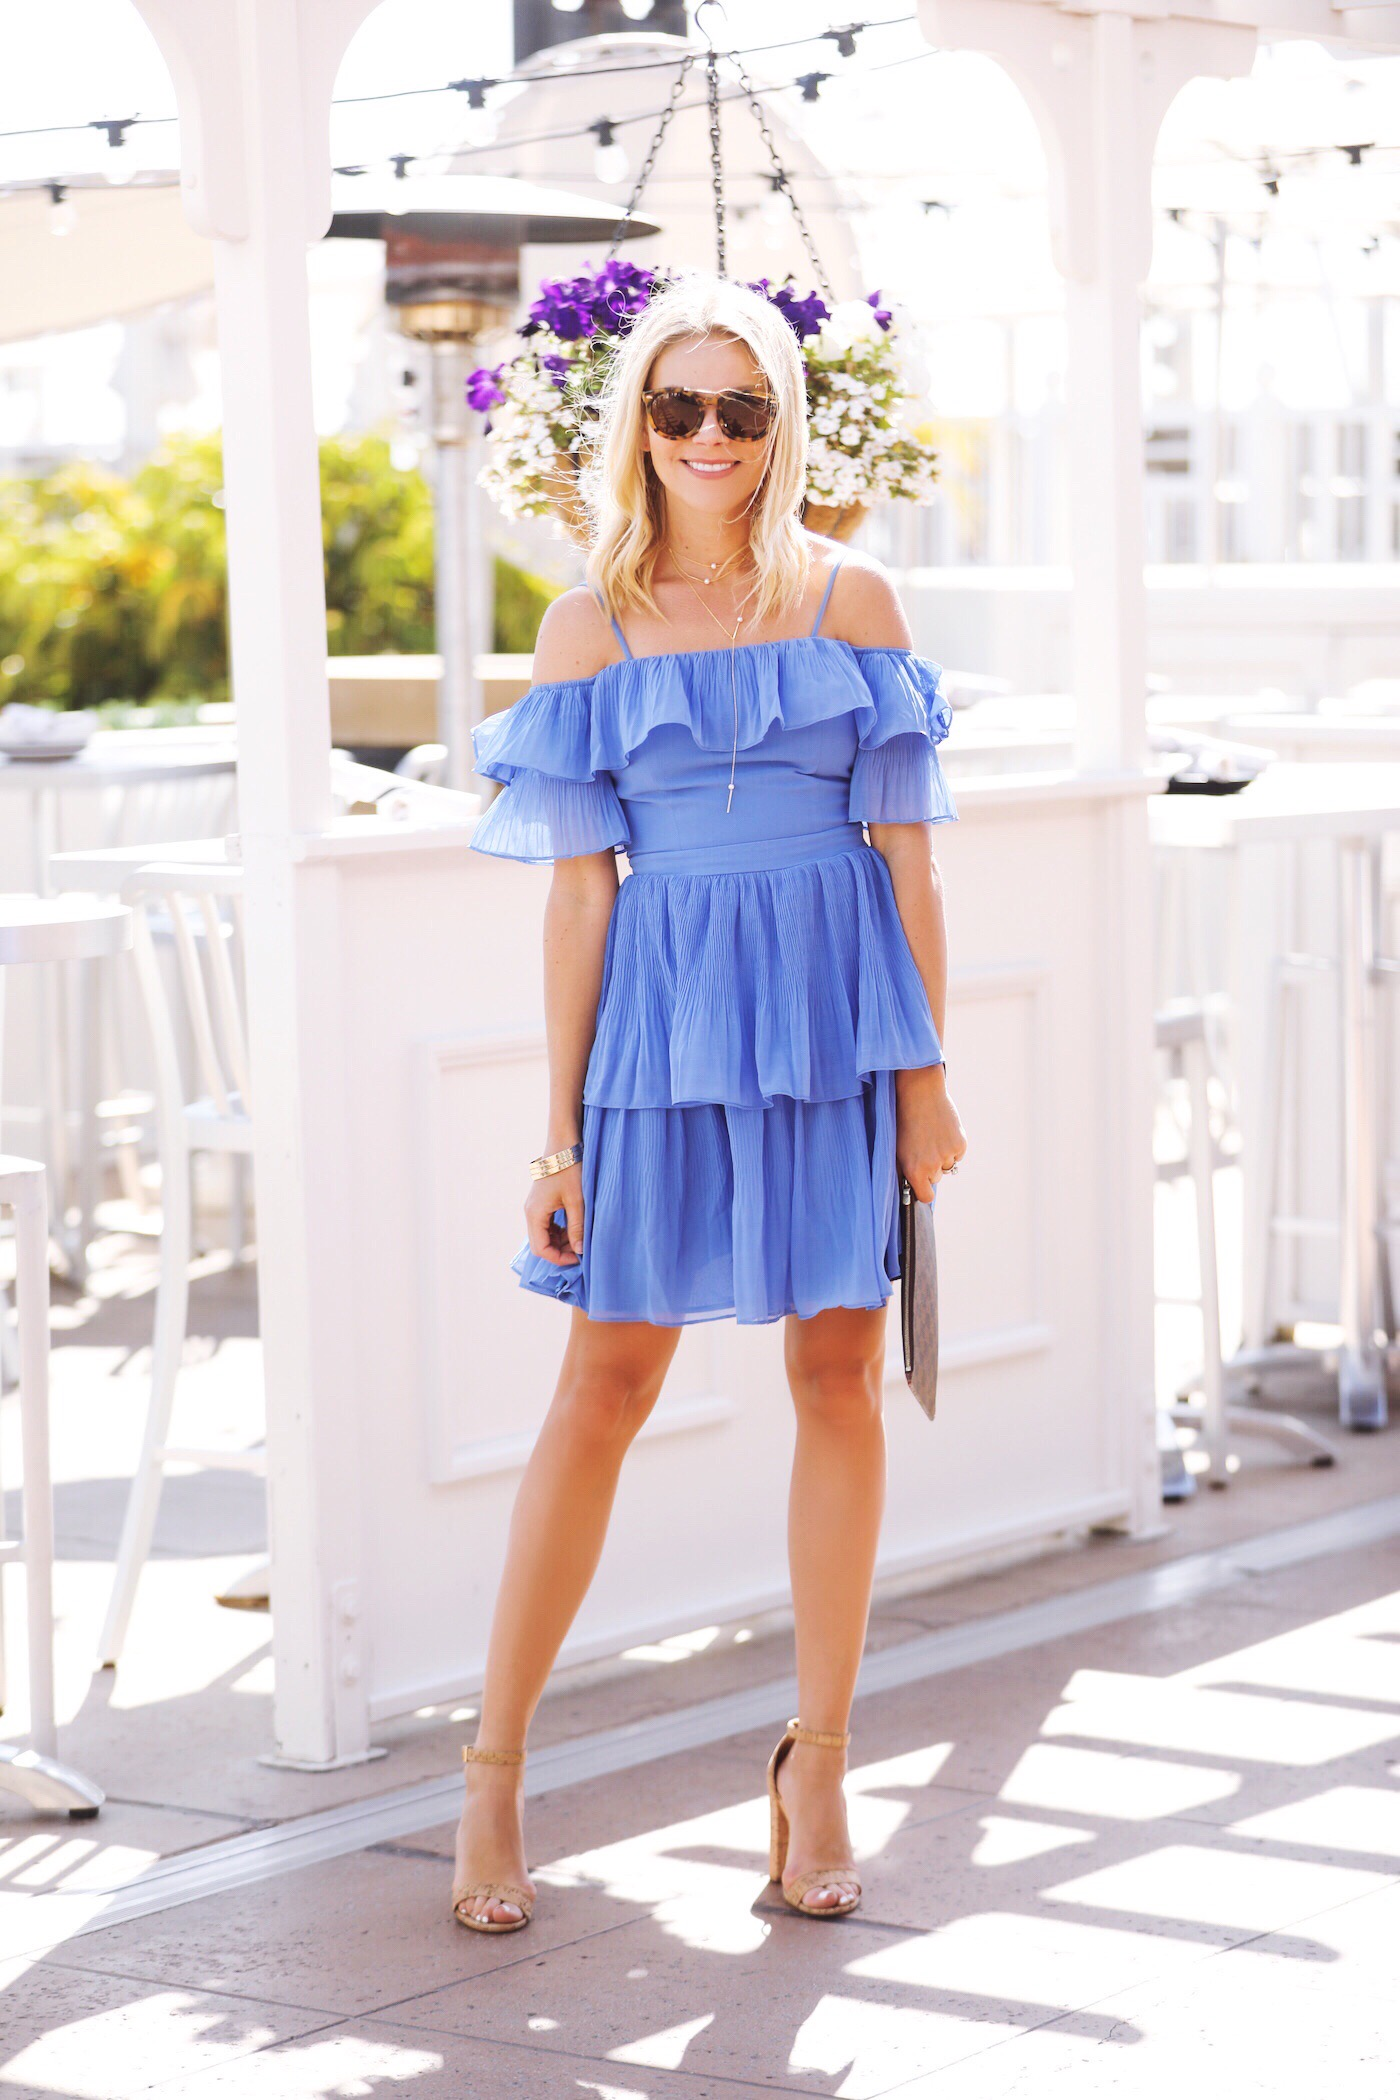 Summer Wedding Guest Dresses By Sprinkles On Sunday